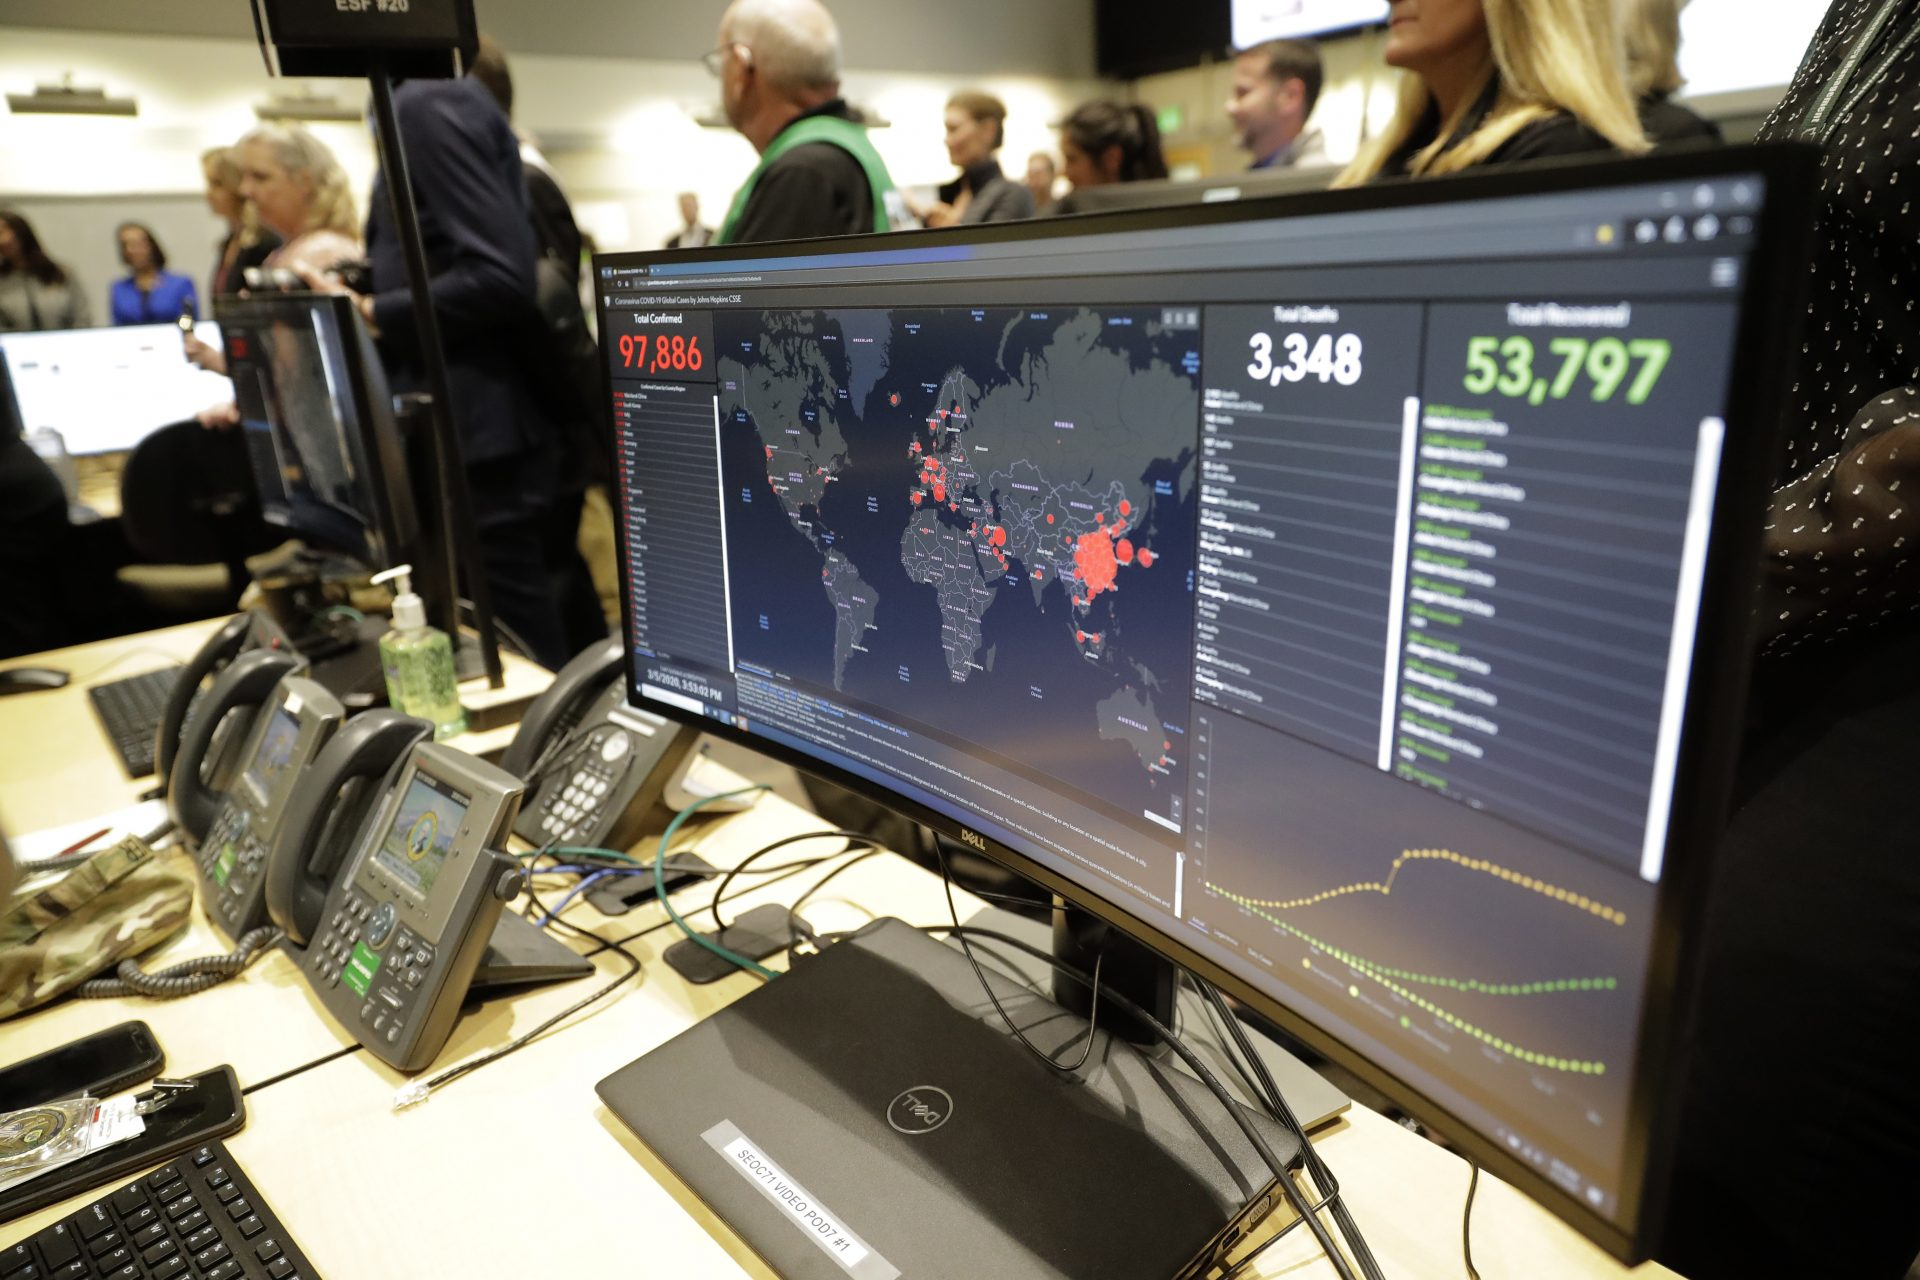 A monitor displays world-wide statistics relating to the spread of the COVID-19 coronavirus during a visit of Vice President Mike Pence to the Washington State Emergency Operations Center Thursday